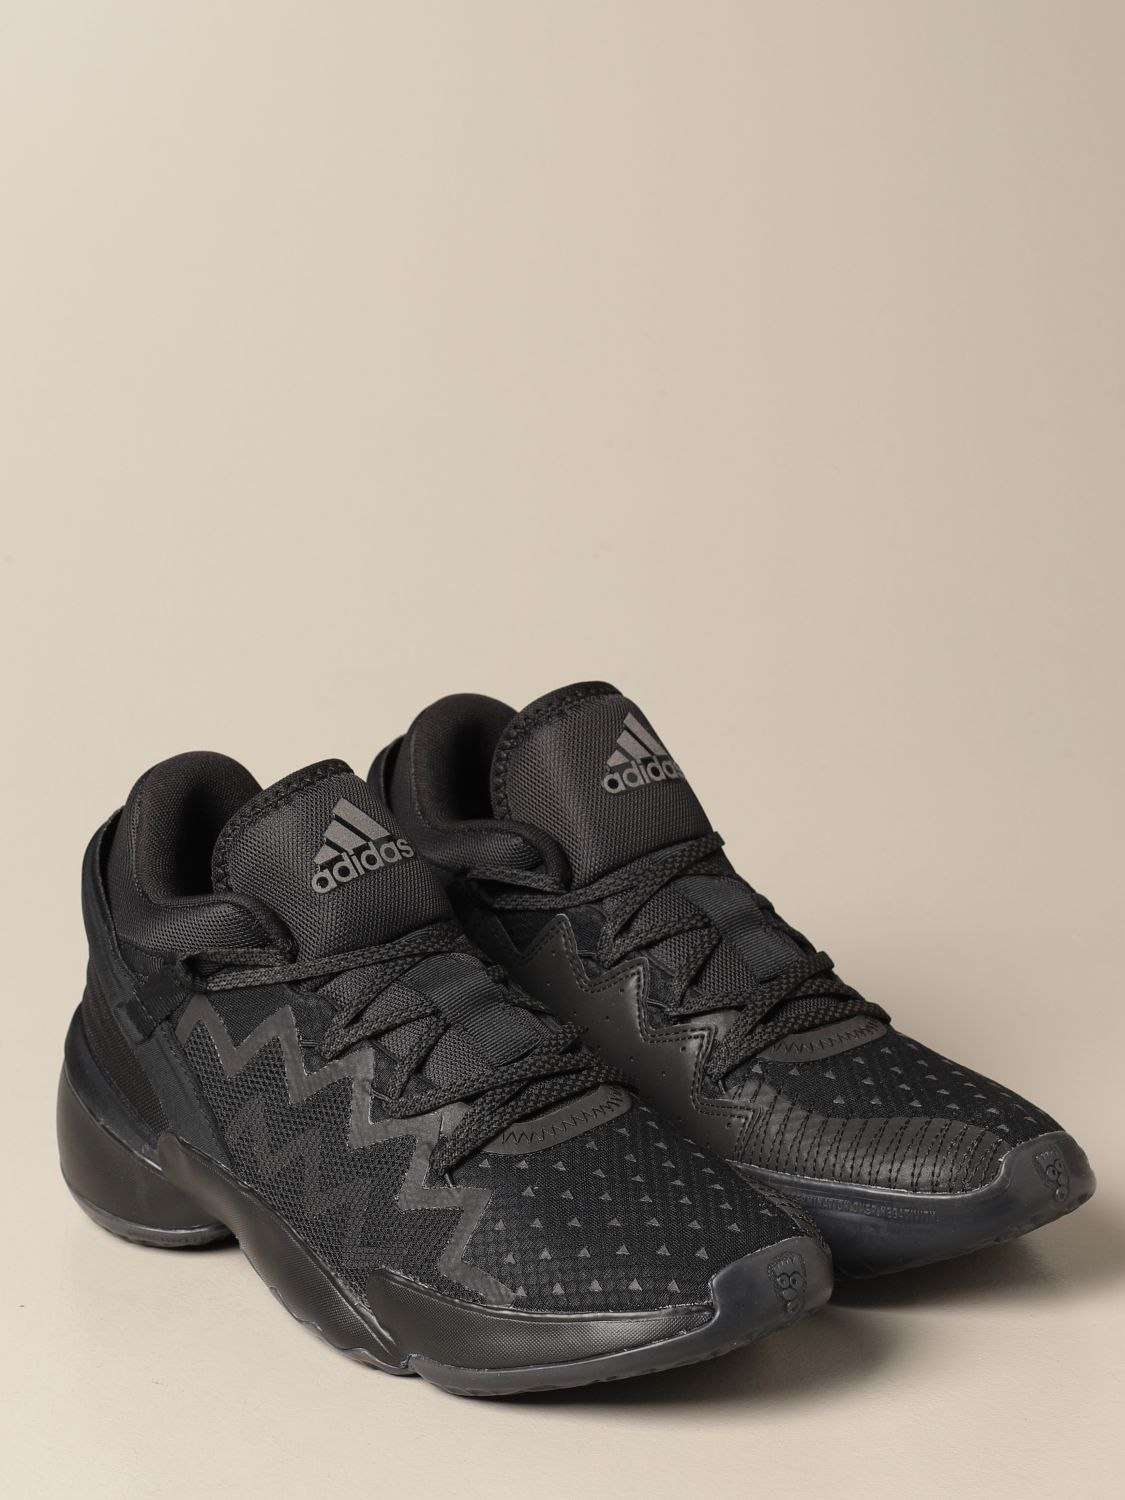 Trainers Adidas Originals: Sneakers D.O.N. Issue 2 Adidas Originals in technical fabric black 2